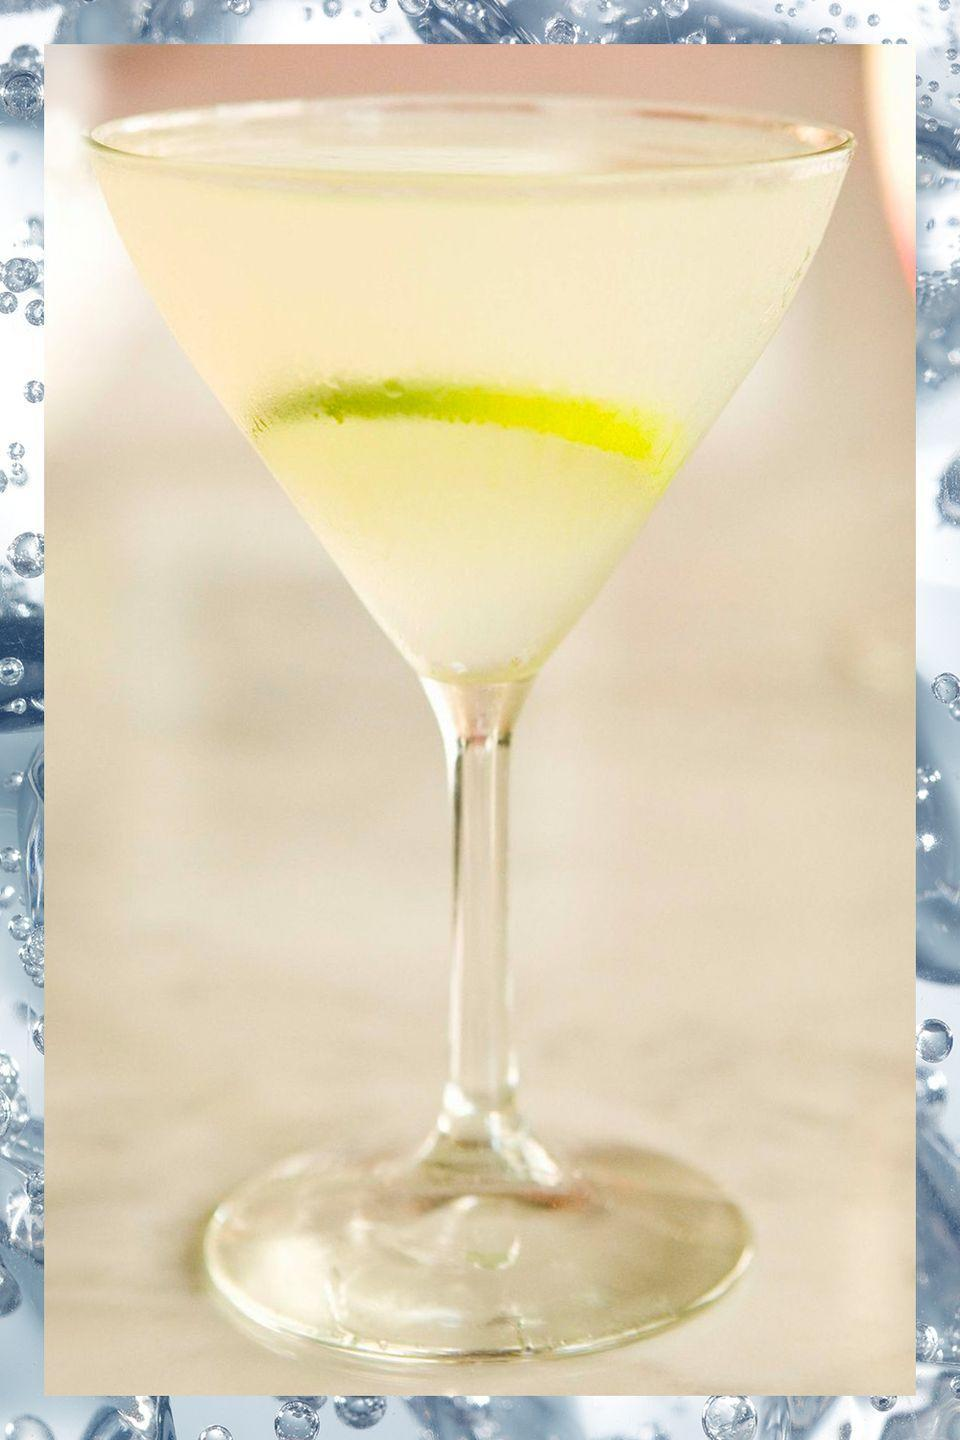 <p>The classic recipe calls for gin, but this drink is just as tasty if you substitute vodka instead.</p><p>- 2 oz gin or vodka<br>- .75 oz simple syrup<br>- .75 oz lime juice</p><p><em>Shake ingredients with ice and strain into cocktail glass.</em></p>